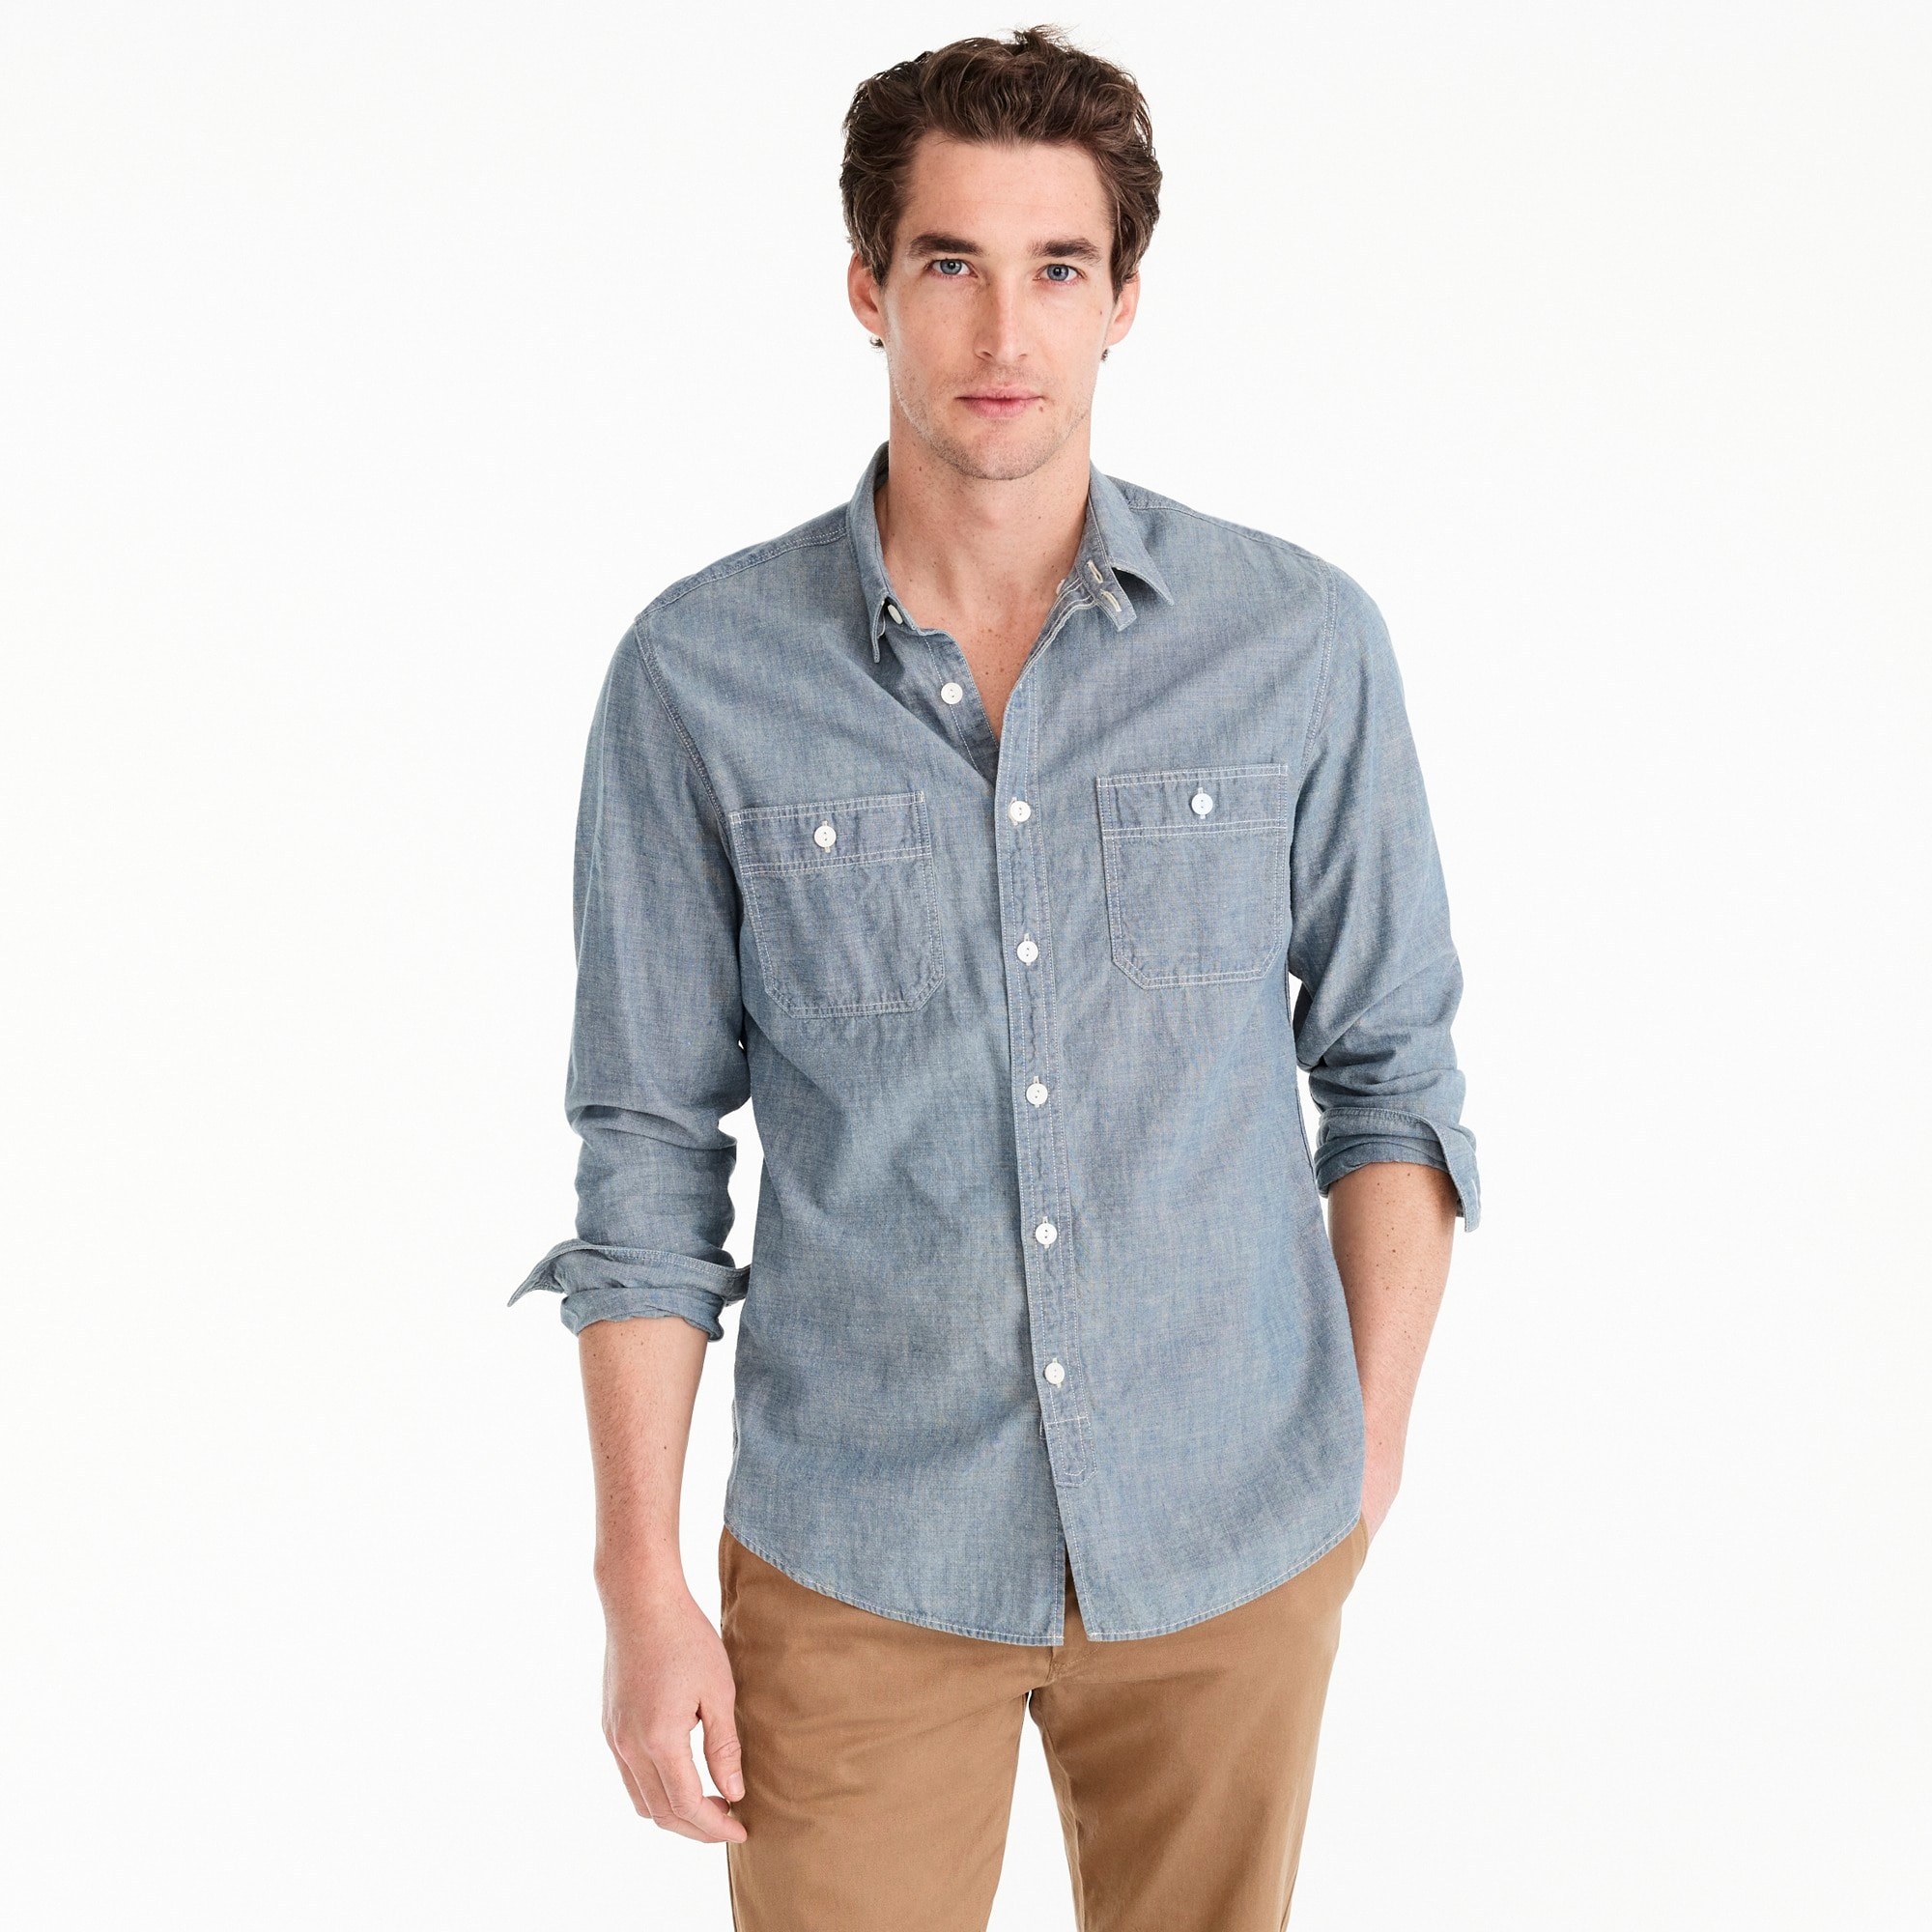 Selvedge Japanese chambray utility shirt men denim c